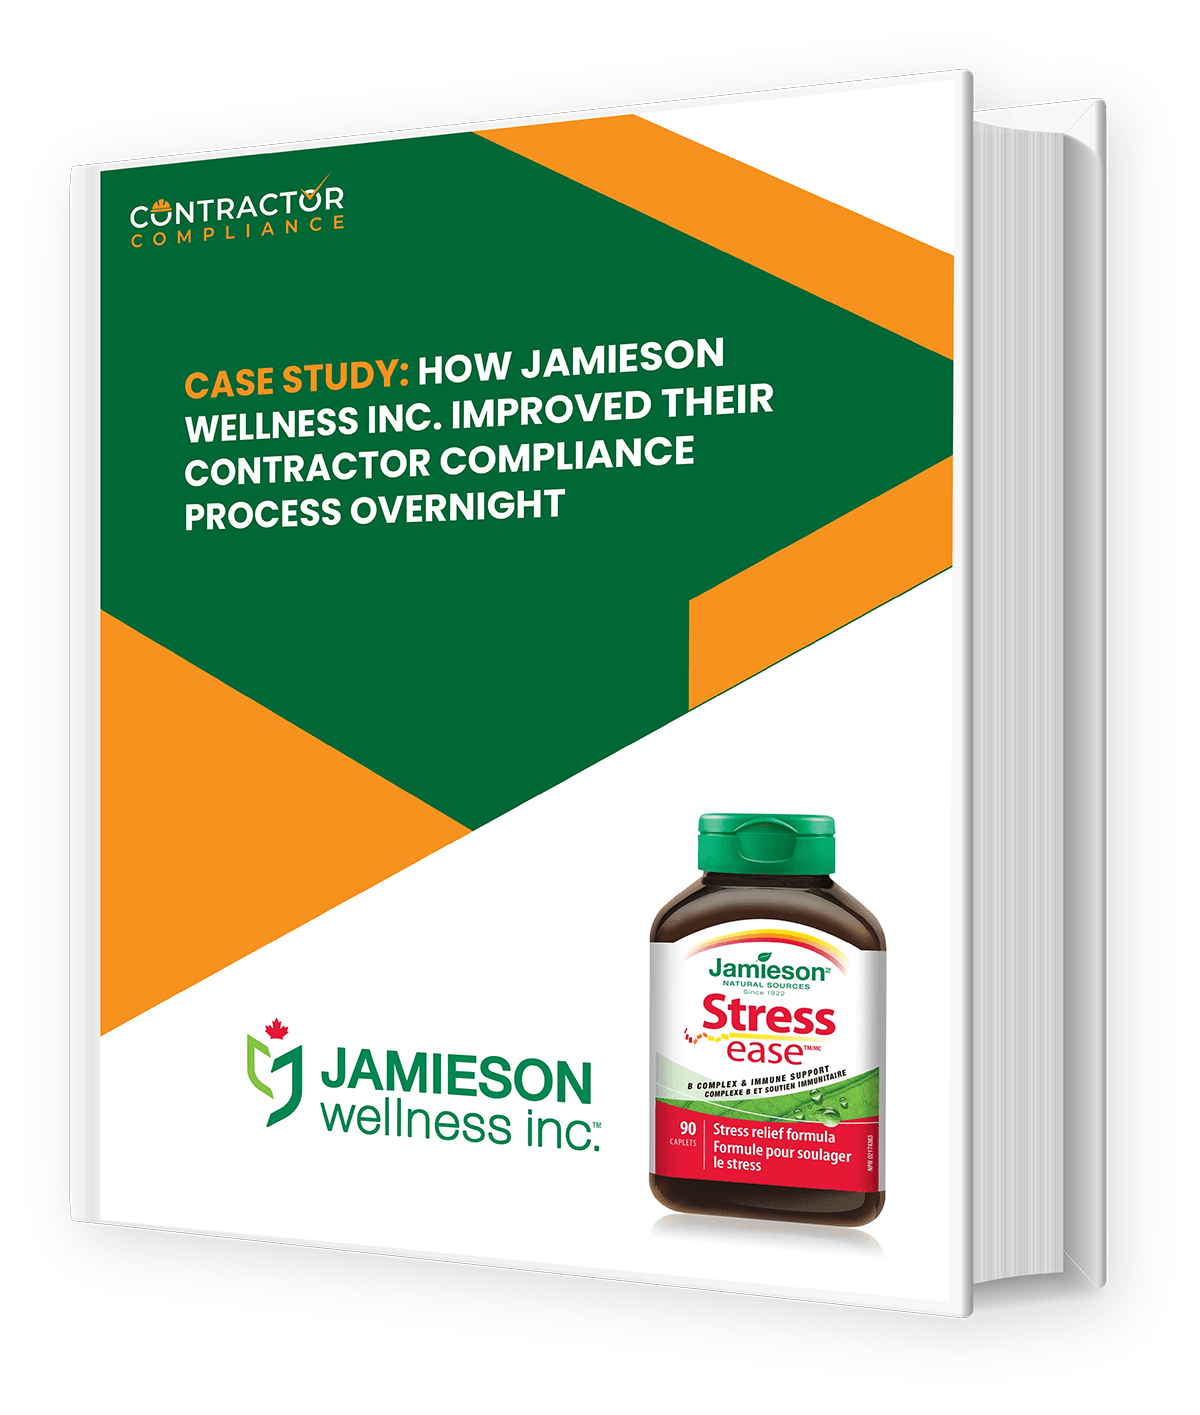 How Jamieson Improved Their Contractor Compliance Process Overnight